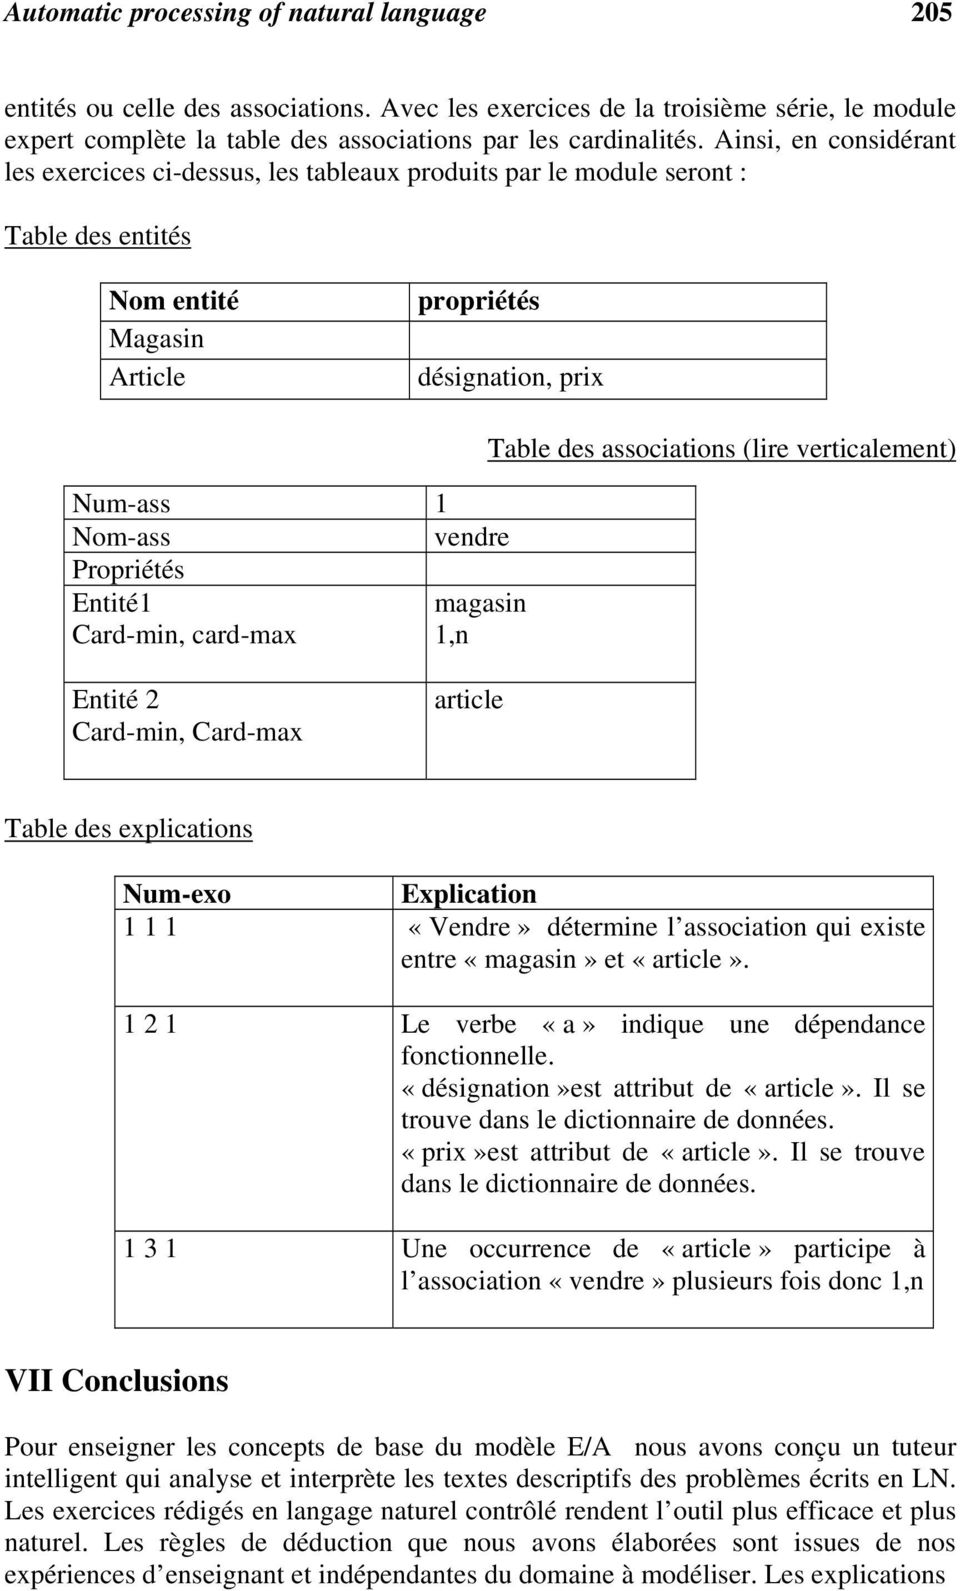 Propriétés Entité1 magasin Card-min, card-max 1,n Table des associations (lire verticalement) Entité 2 Card-min, Card-max article Table des explications Num-exo Explication 1 1 1 «Vendre» détermine l